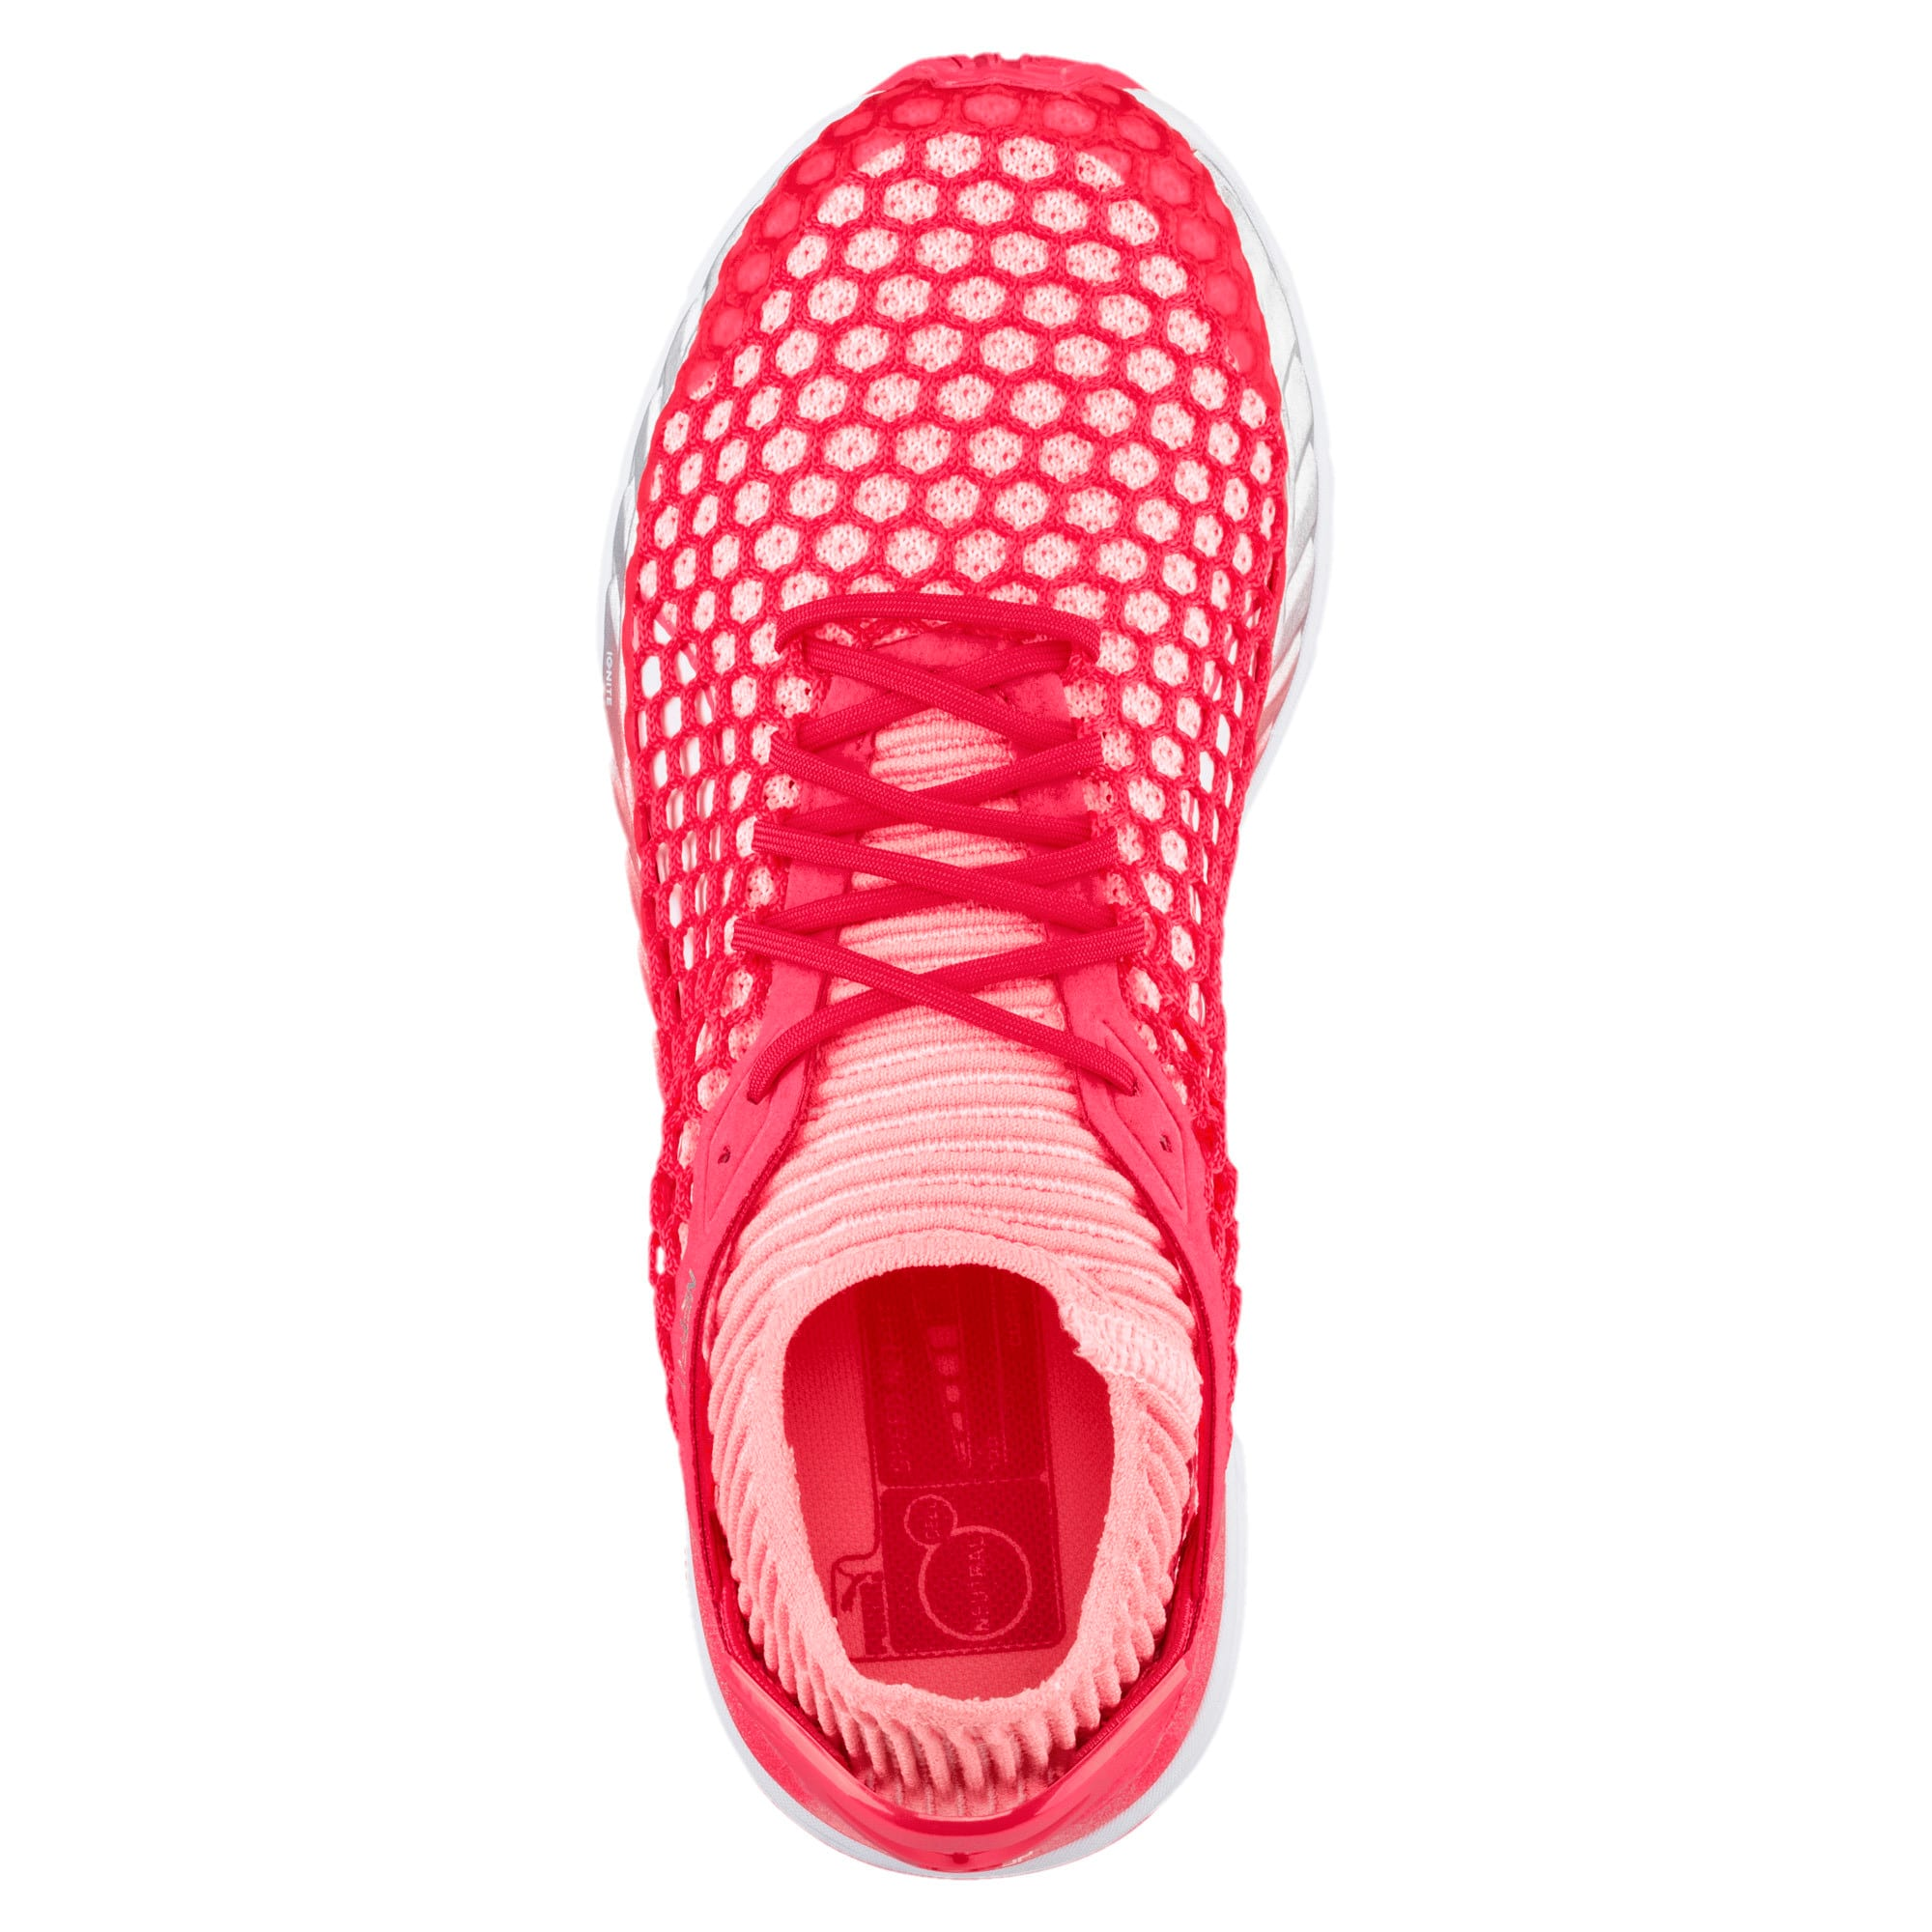 Thumbnail 3 of Speed IGNITE NETFIT 2 Women's Running Shoes, Pink-Fluo Peach-White, medium-IND